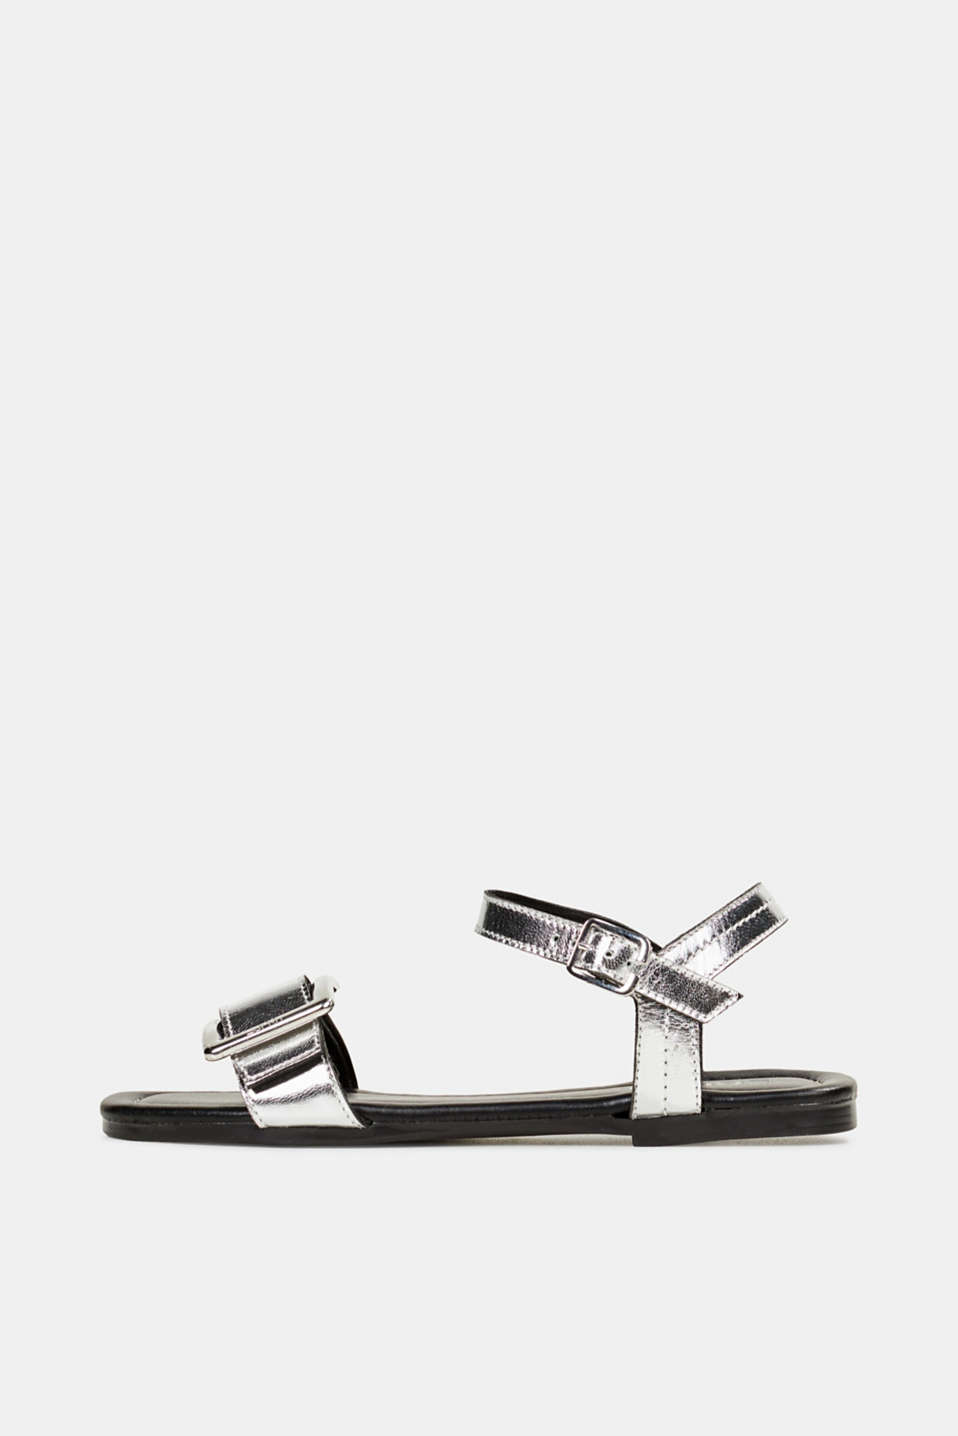 Leather sandals with buckles, SILVER, detail image number 0